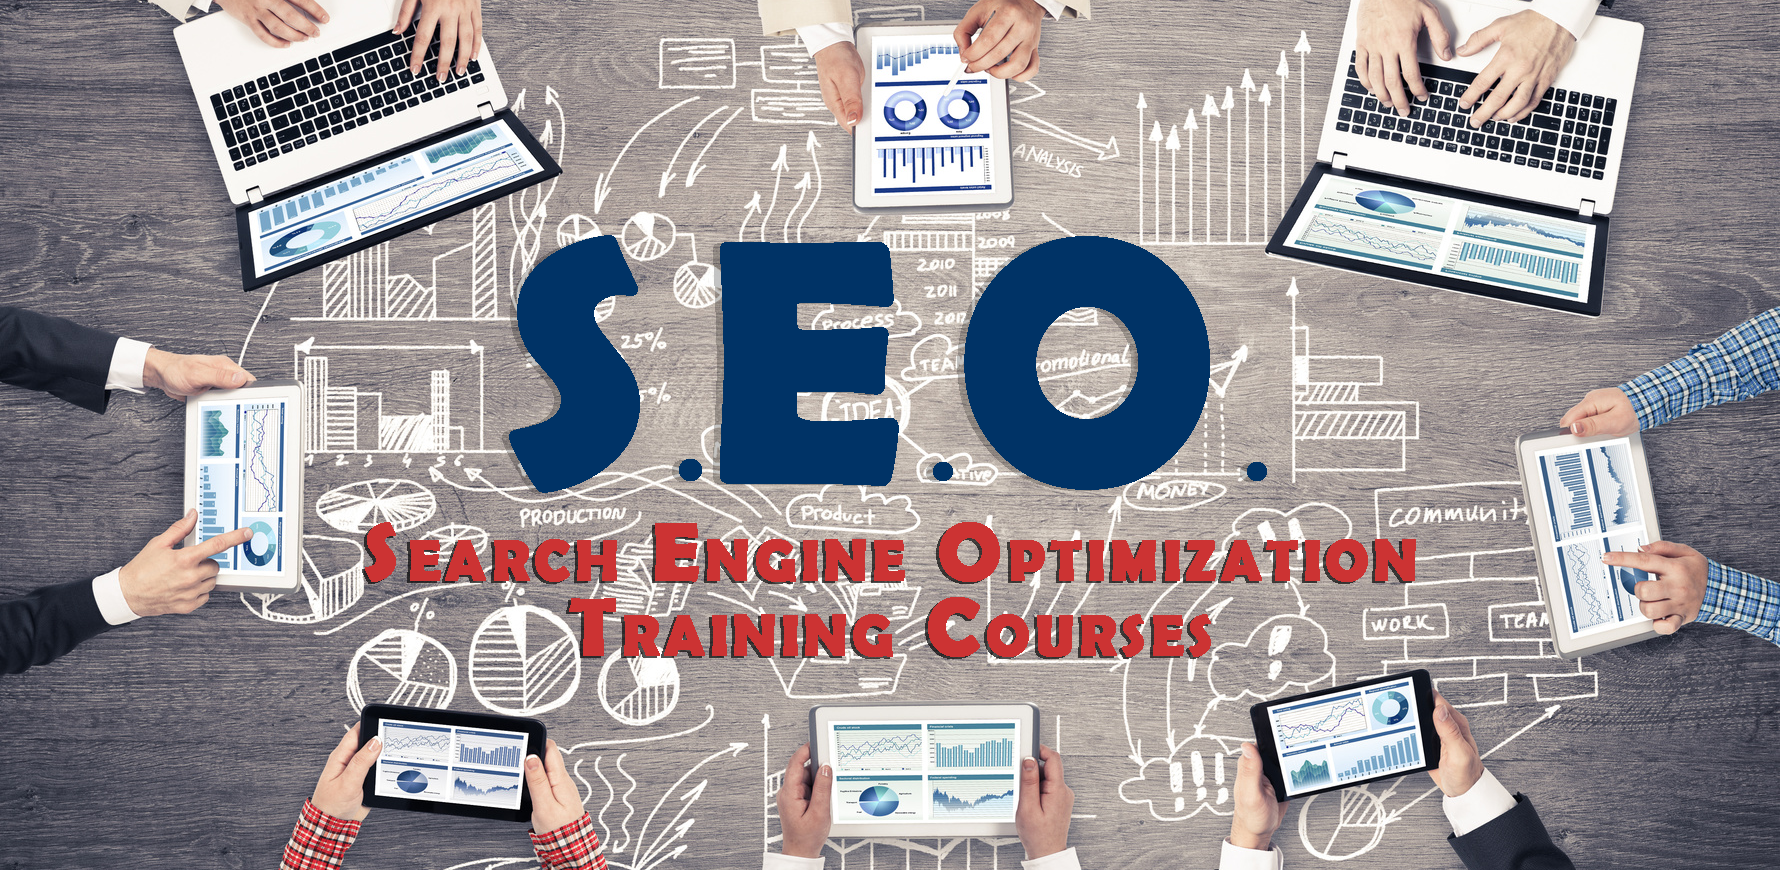 Search Engine Optimization Training Courses, a Doral Chamber of Commerce event.